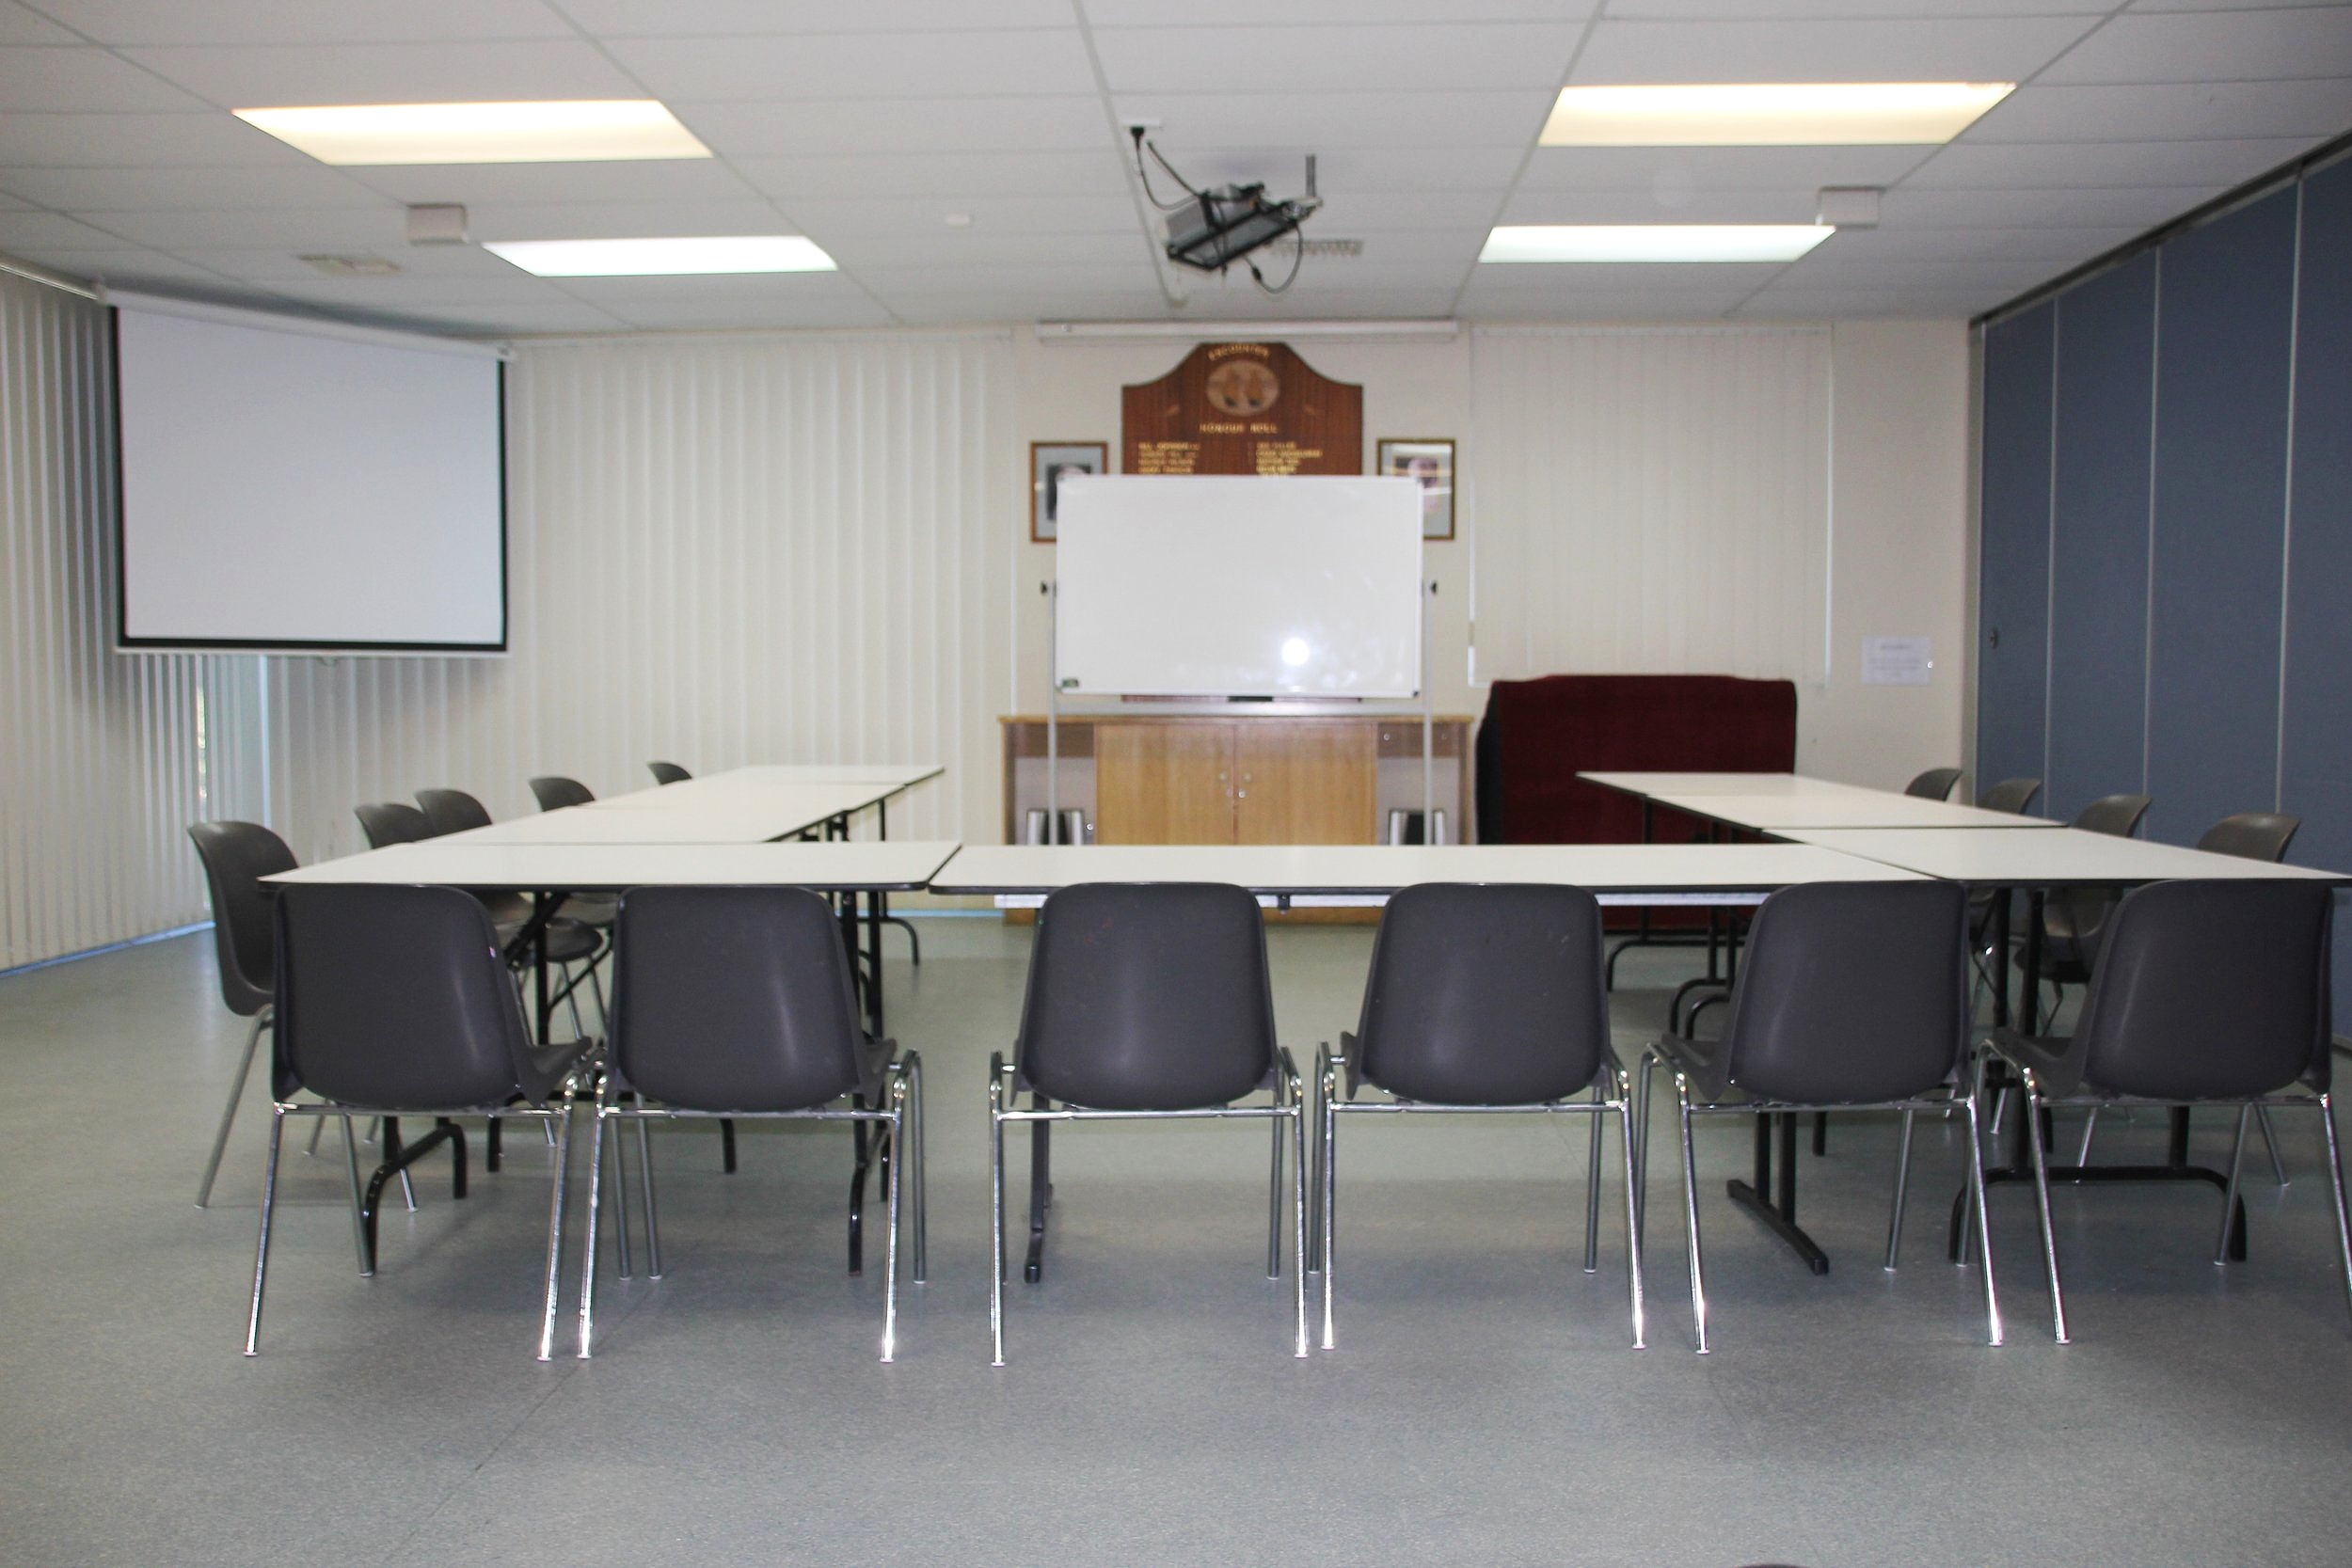 Room set up in U-shape for a conference